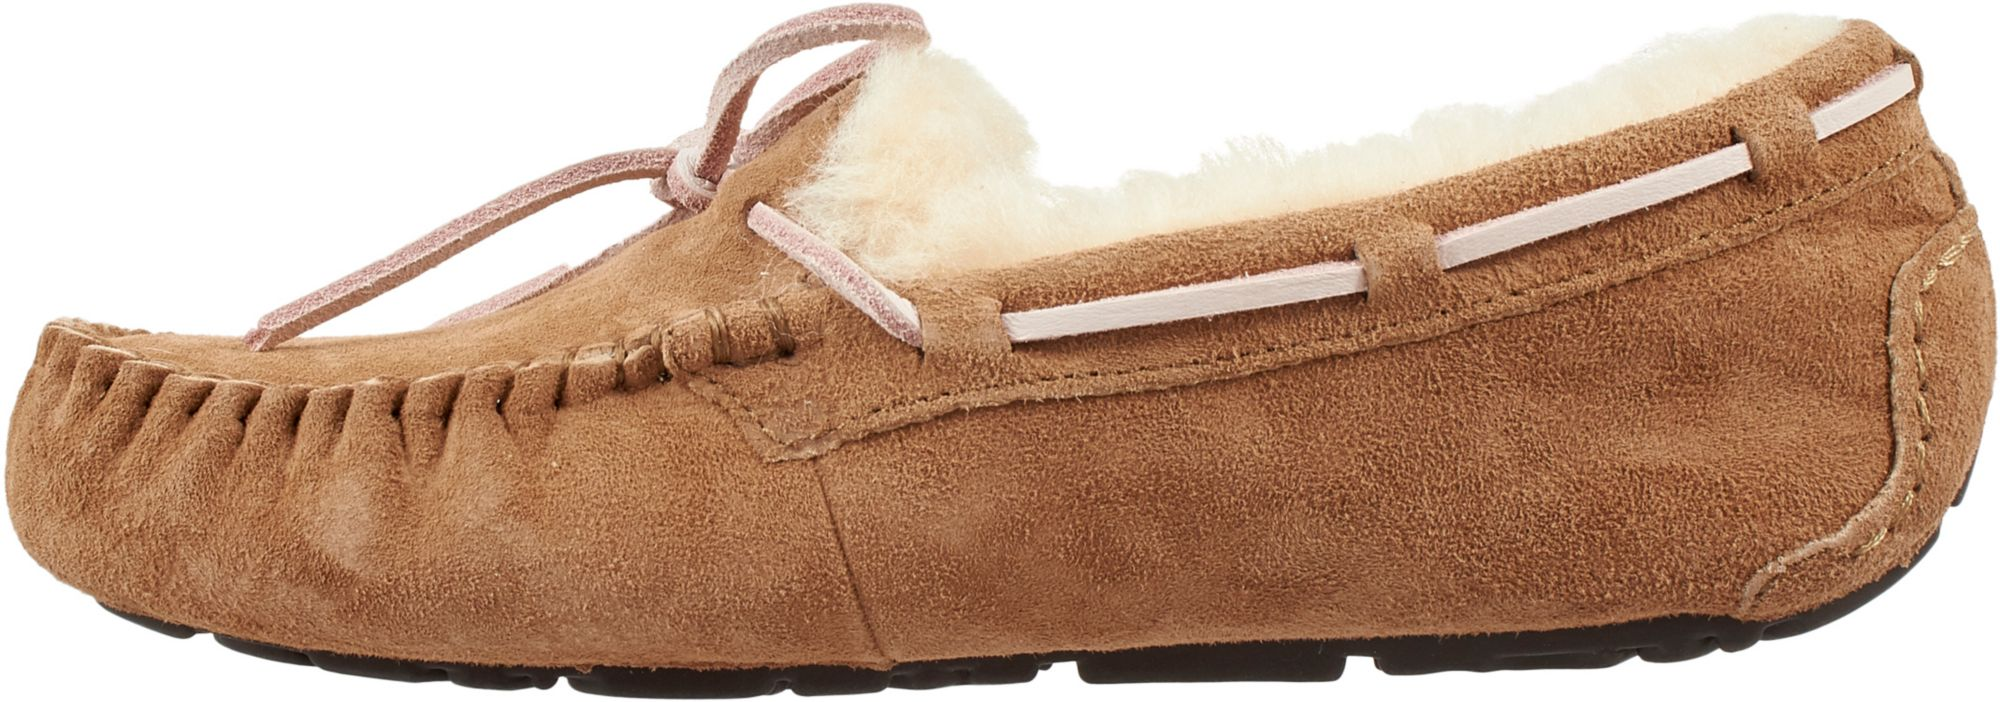 ugg australia women s dakota slippers dick s sporting goods rh dickssportinggoods com